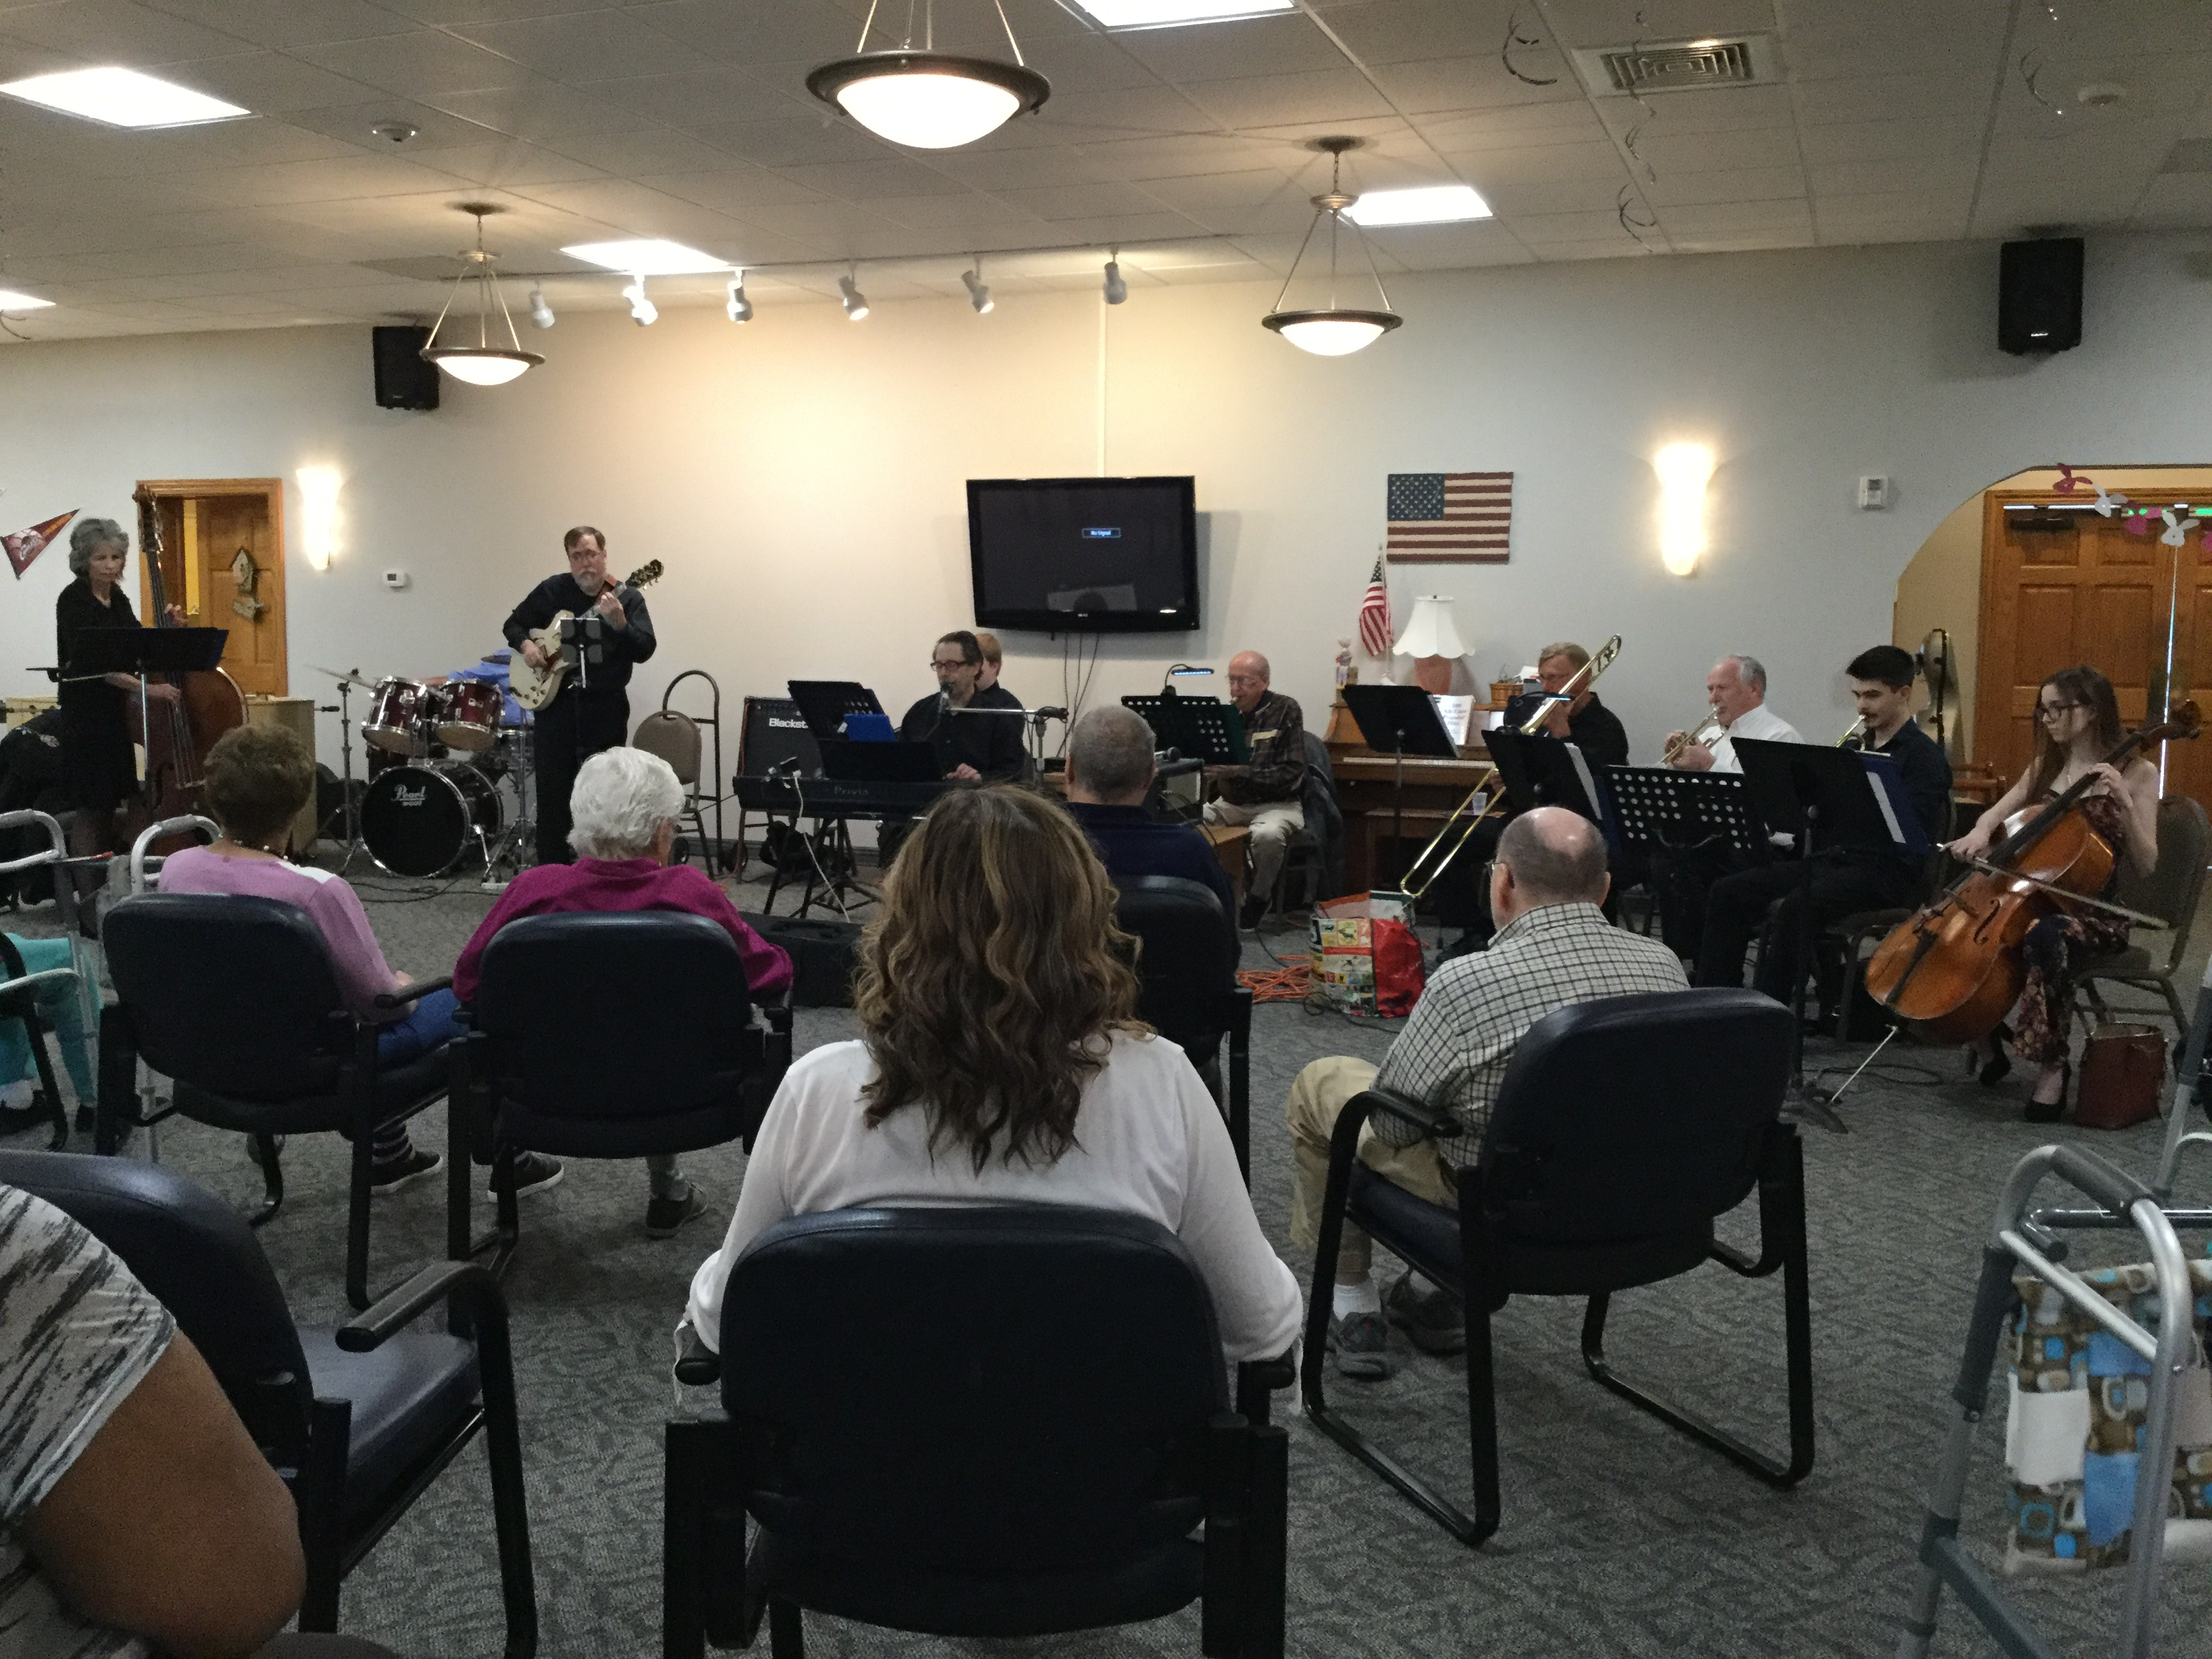 Steve Dallas and his band entertain our members of our Adult Day Center regularly